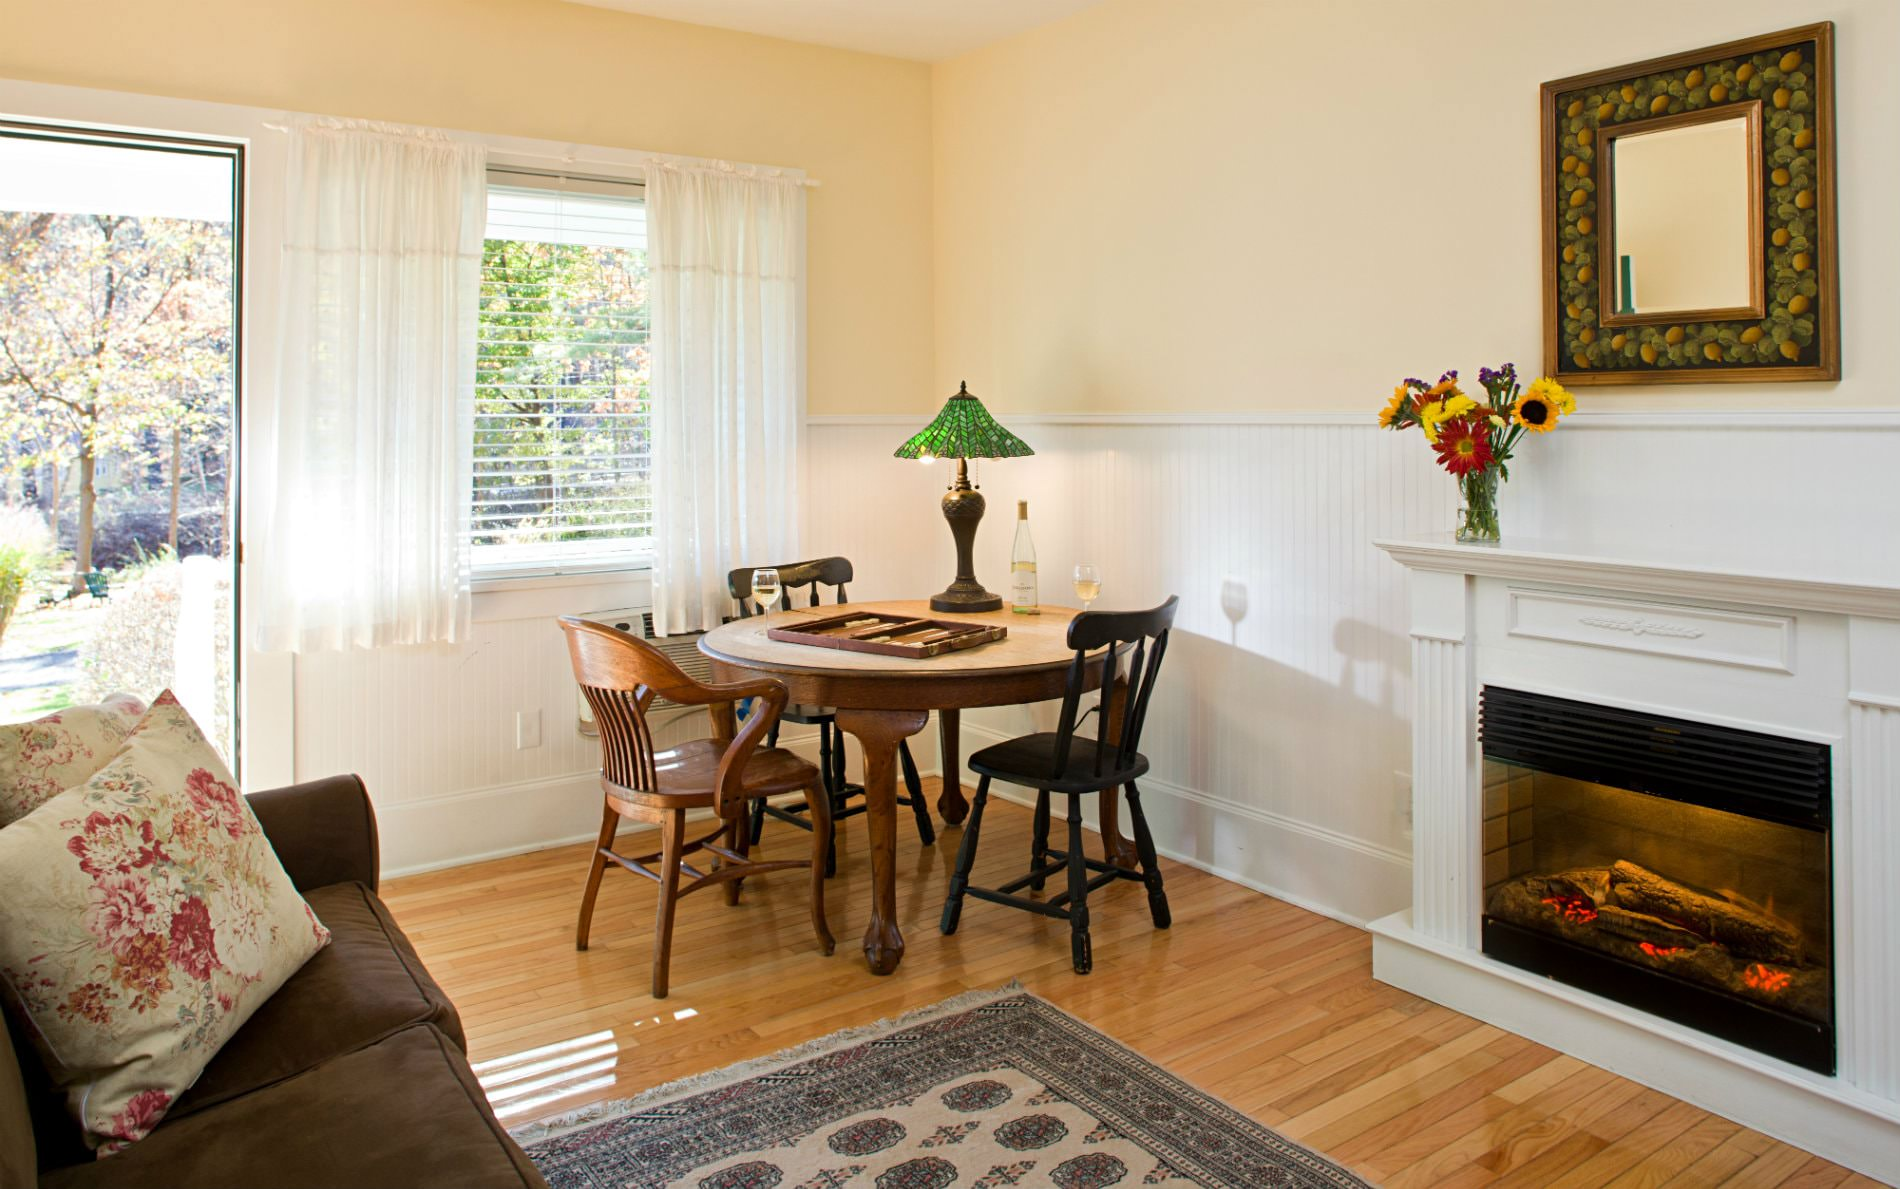 Beige and white room with wood floors, glass door and window, fireplace, and round table and chairs